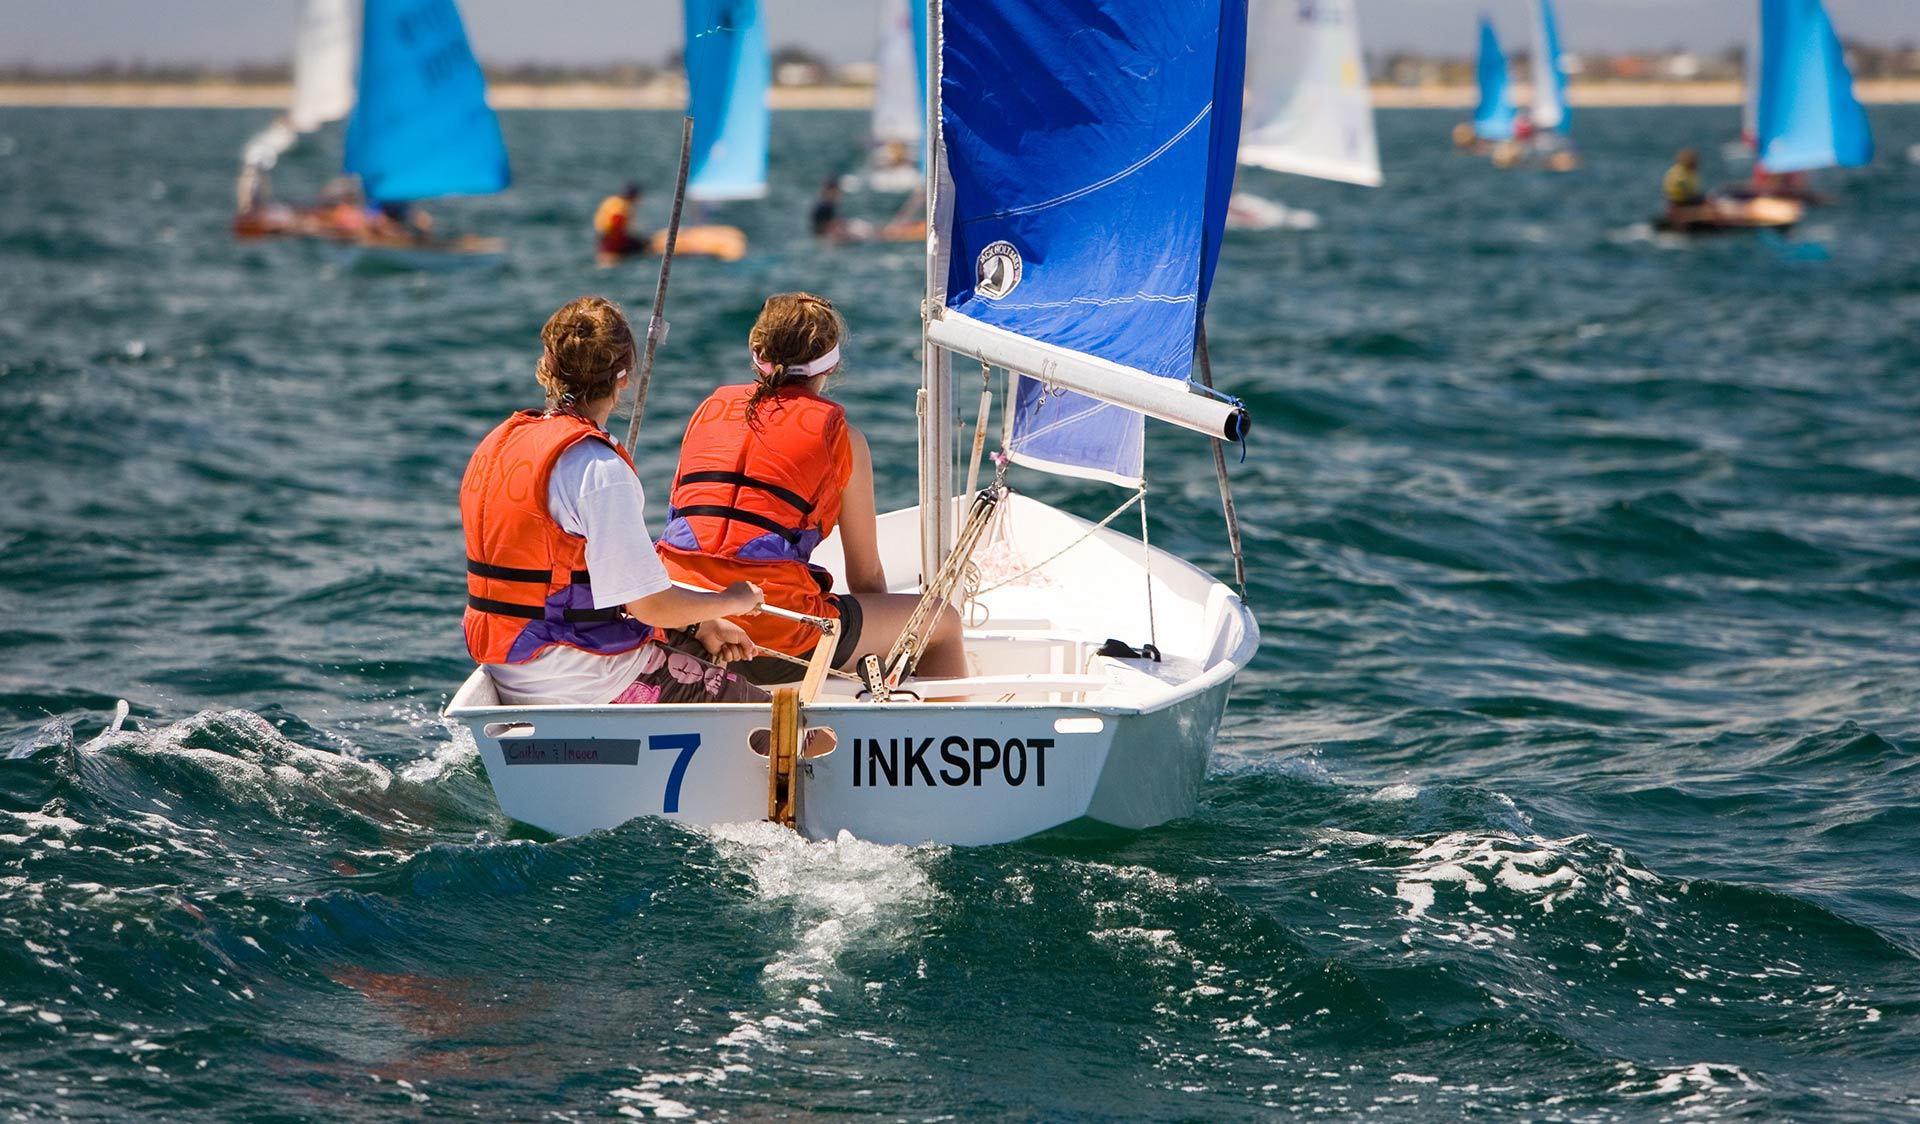 Two teenage girls take part in a sailing race on Port Philip Bay in a small boat called Inkspot.